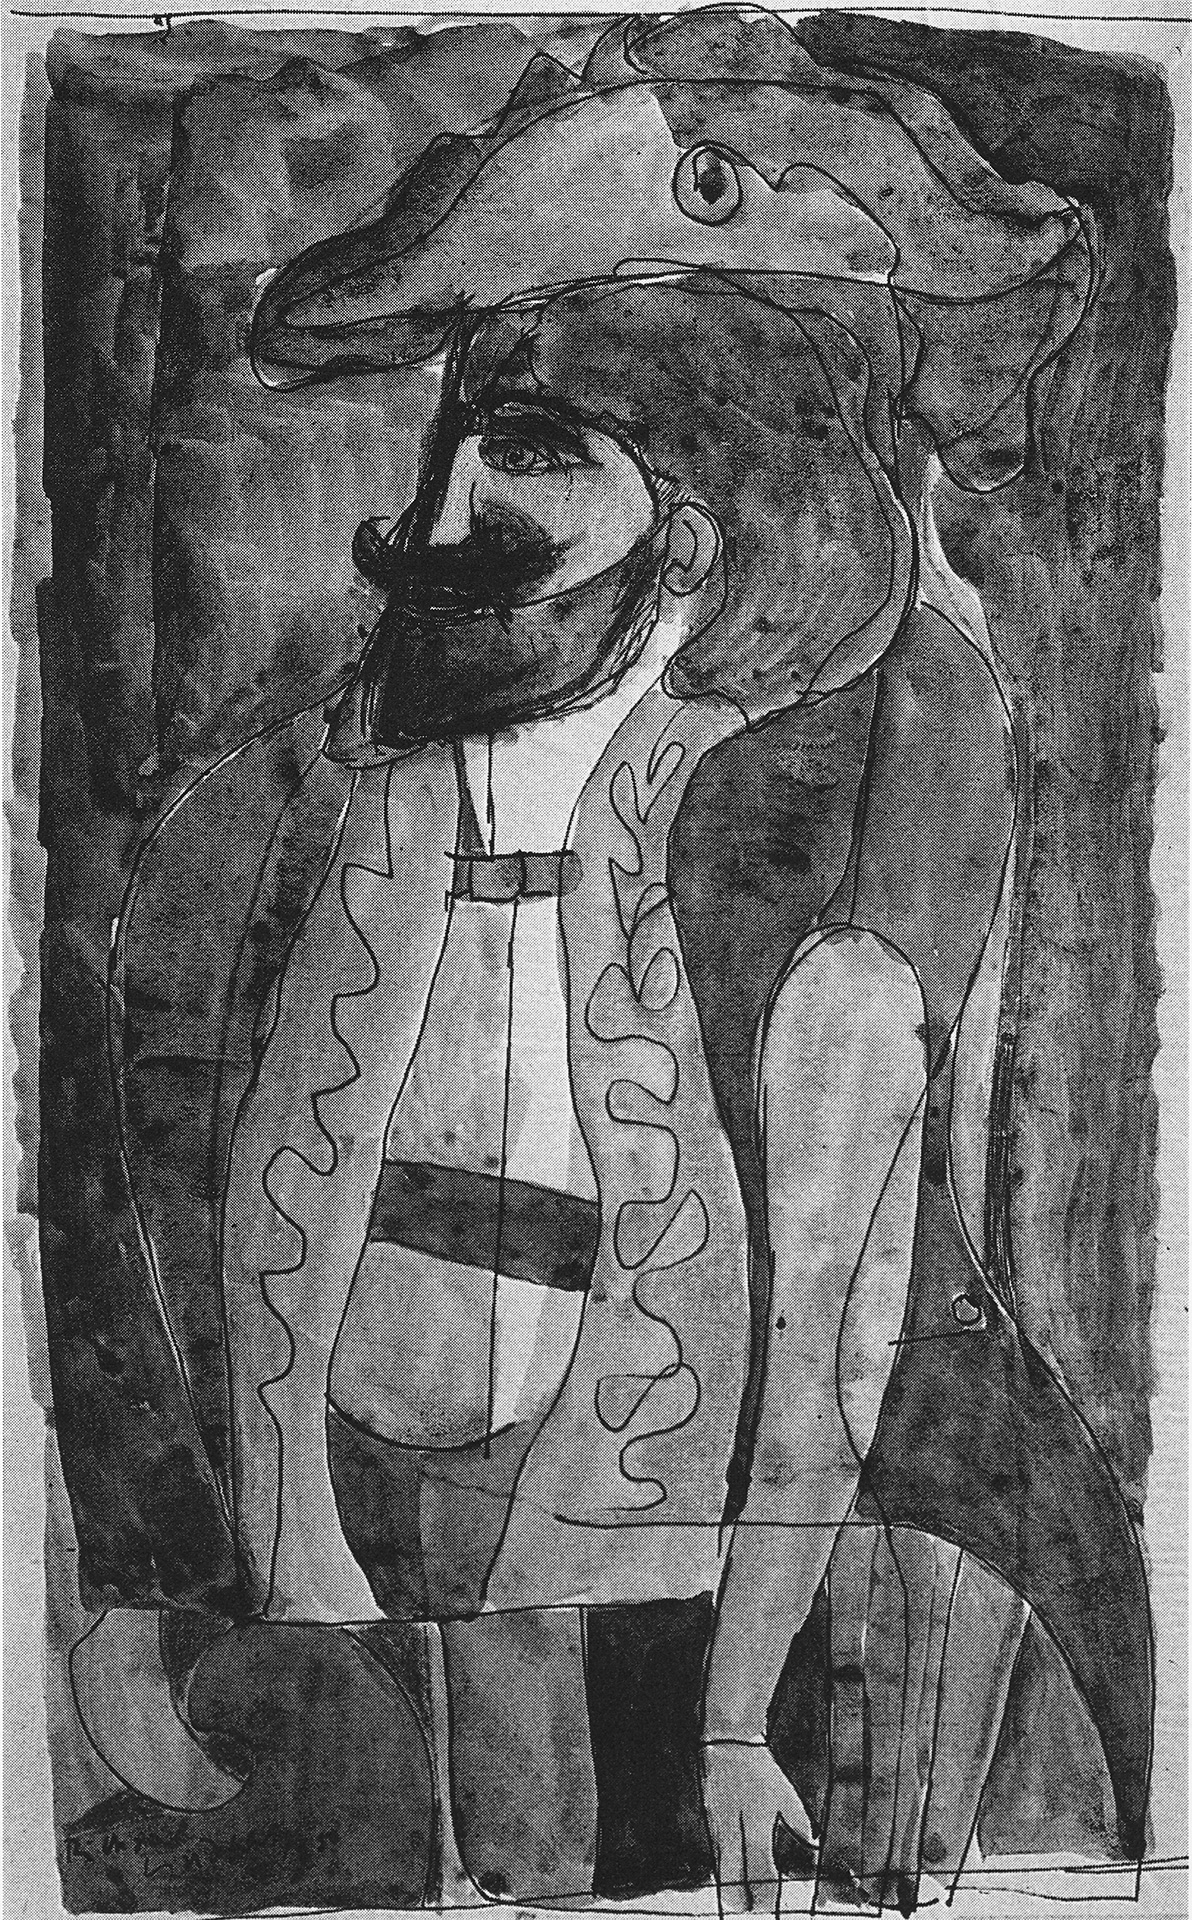 Untitled (Portrait), 1950